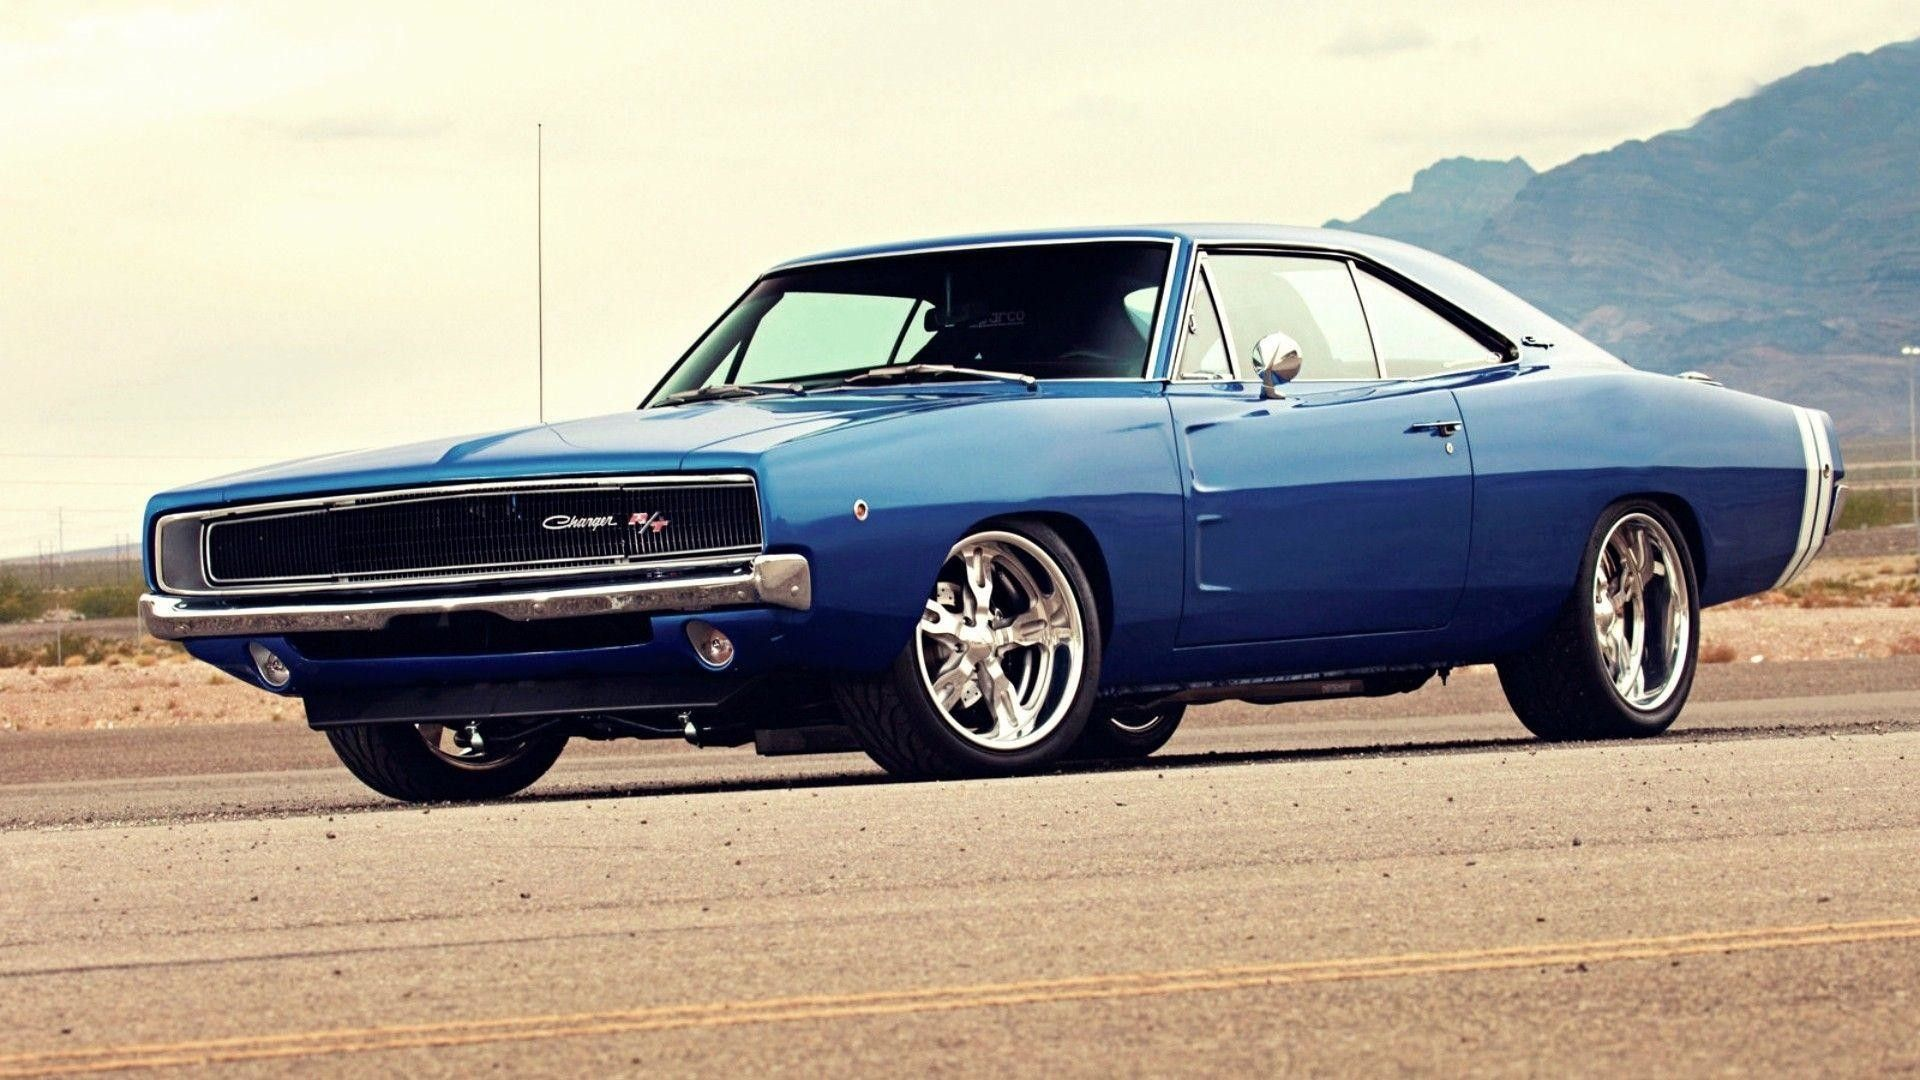 1970 Dodge Charger Wallpapers Top Free 1970 Dodge Charger